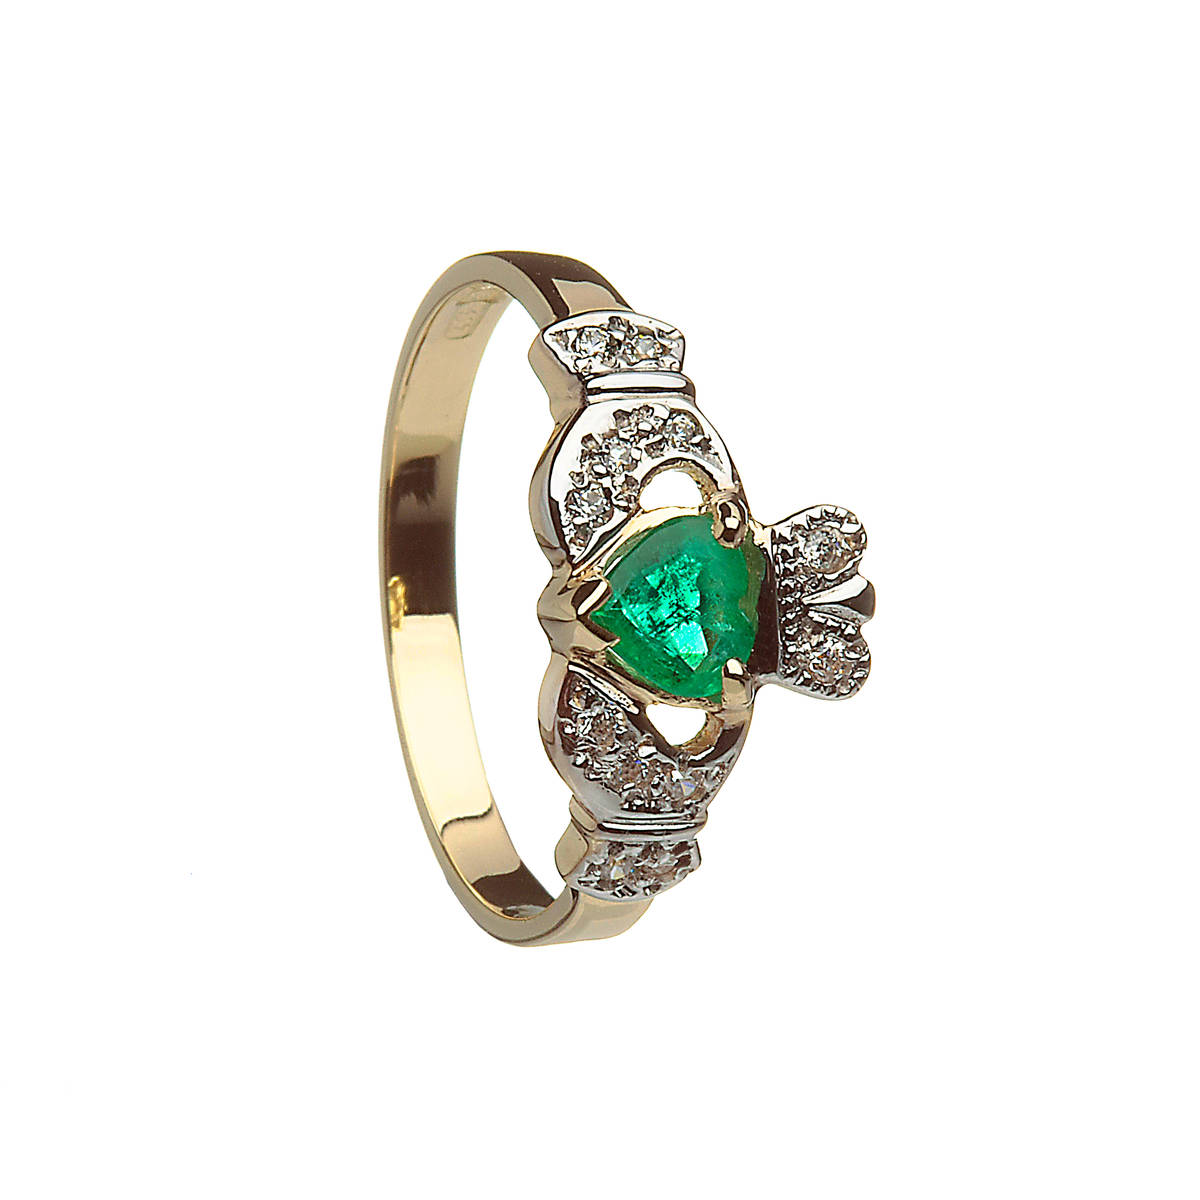 10 carat Yellow Gold Claddagh Ring With Real Emerald And Cubic Zirconia Stones